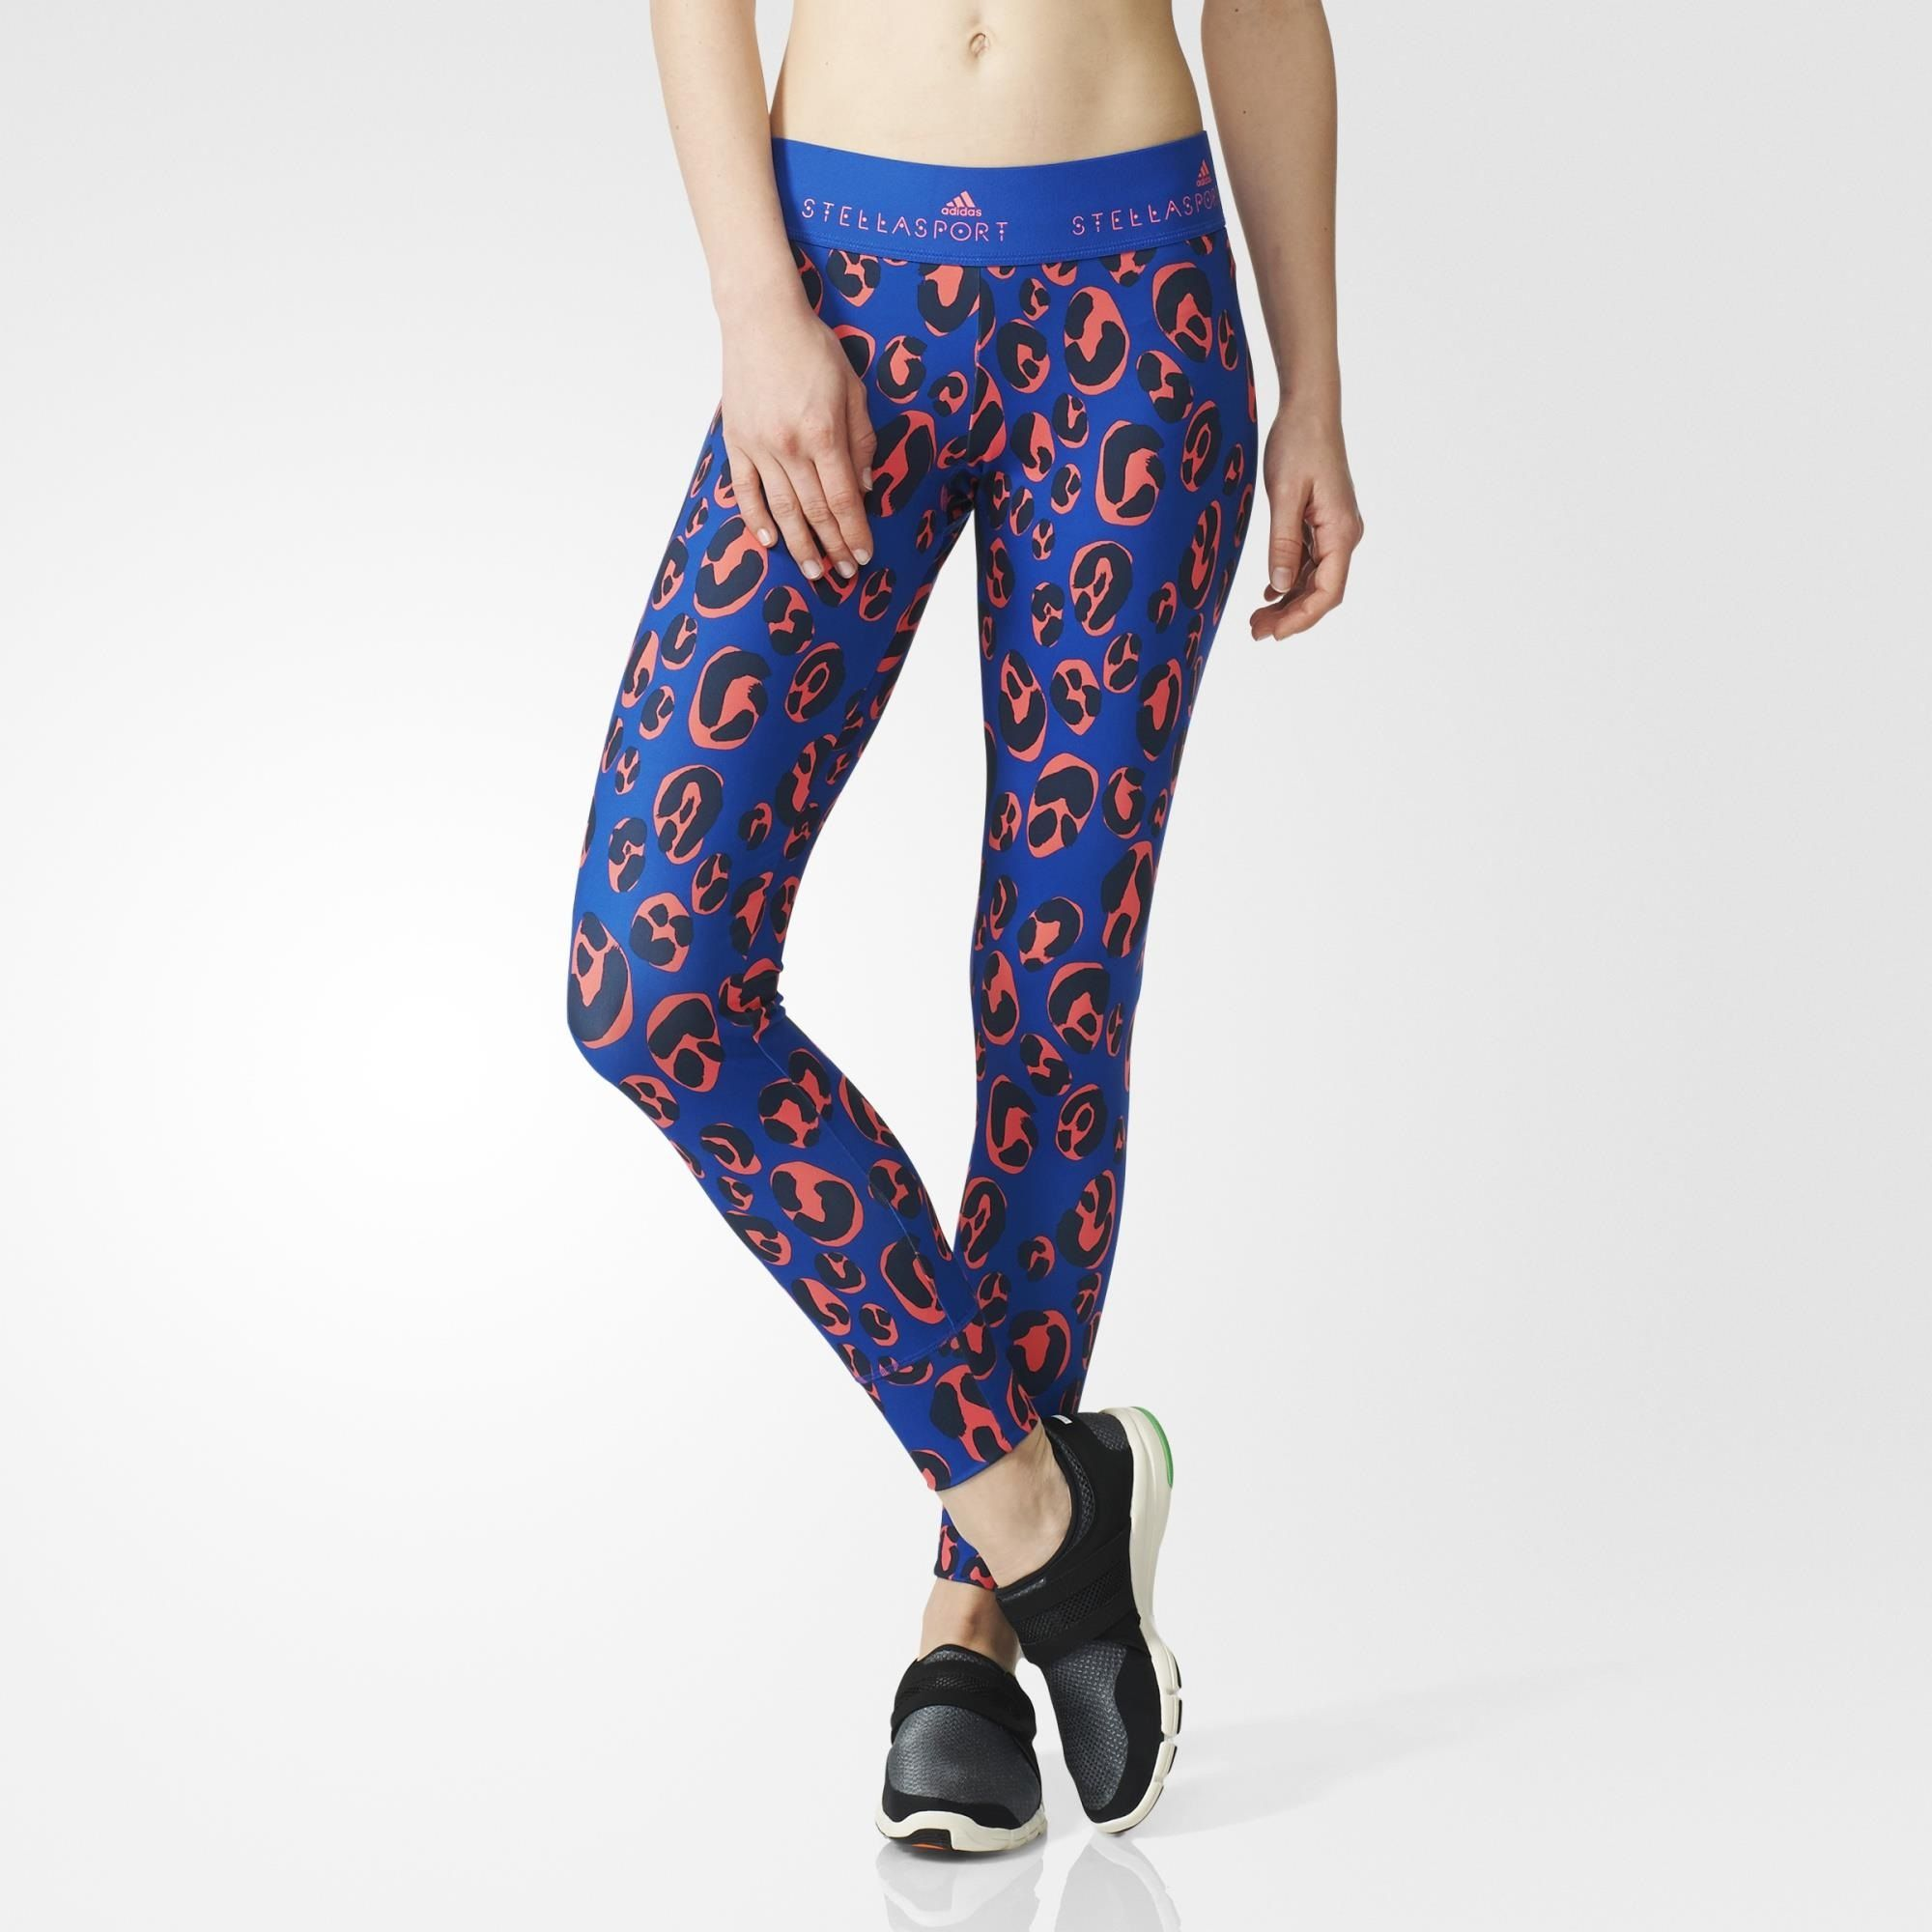 f95048ece3b Designed in collaboration with Stella McCartney, these women's adidas  STELLASPORT training tights display her signature flair for prints with an  allover ...